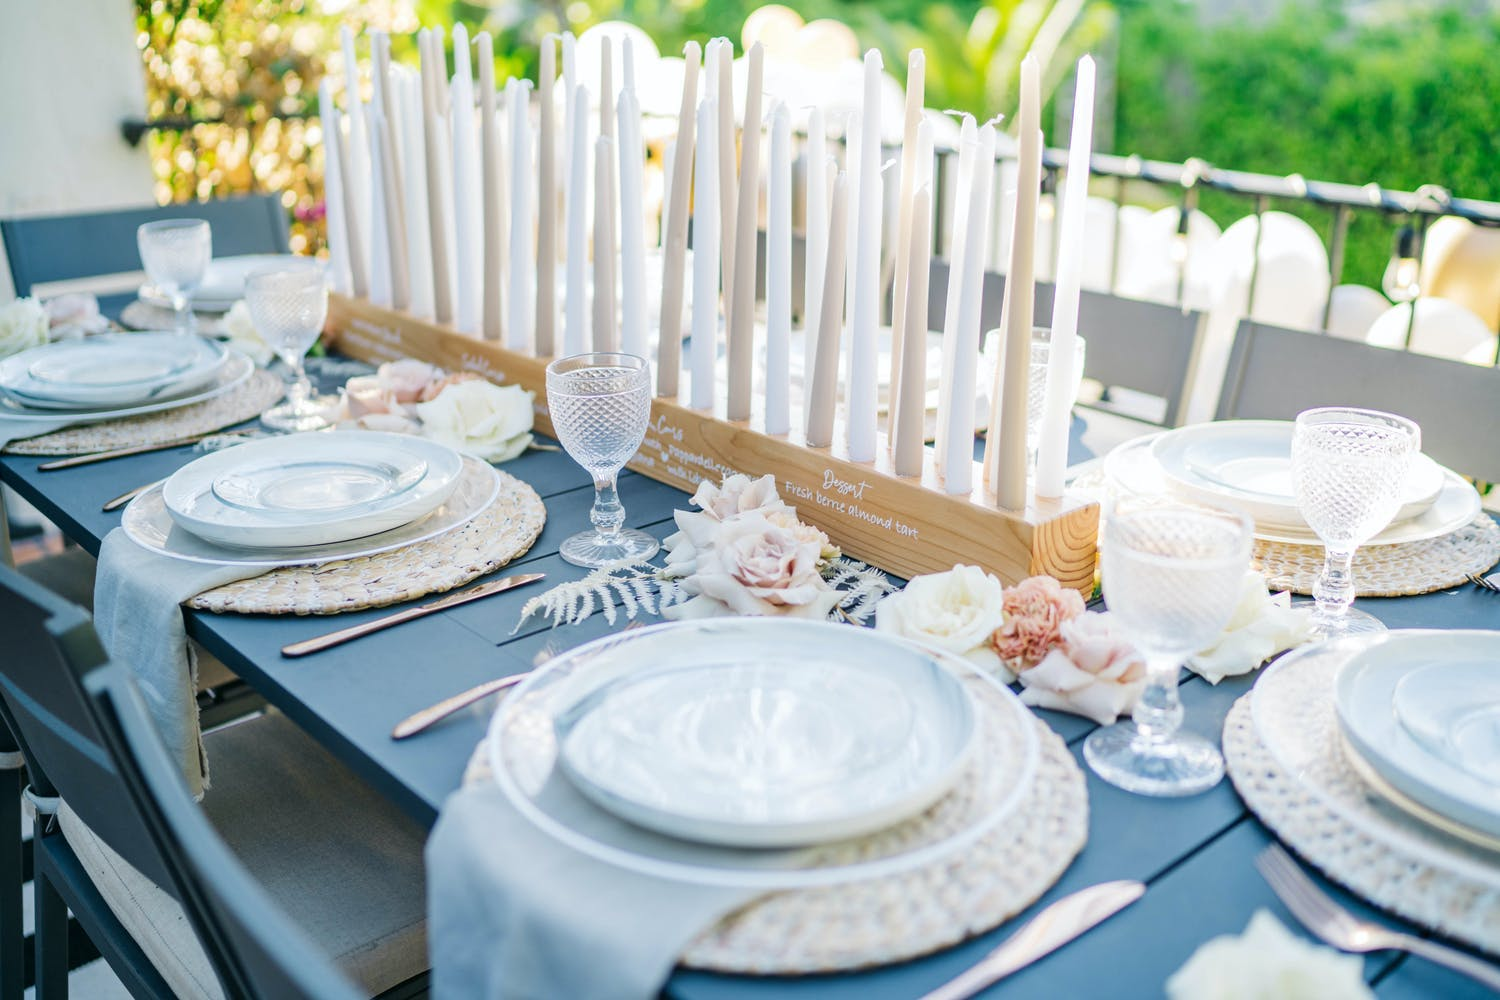 Tablescape with Custom Menu and Seating Chart Printed on Wooden Candle Holder with Pastel Candles for Birthday Party | PartySlate